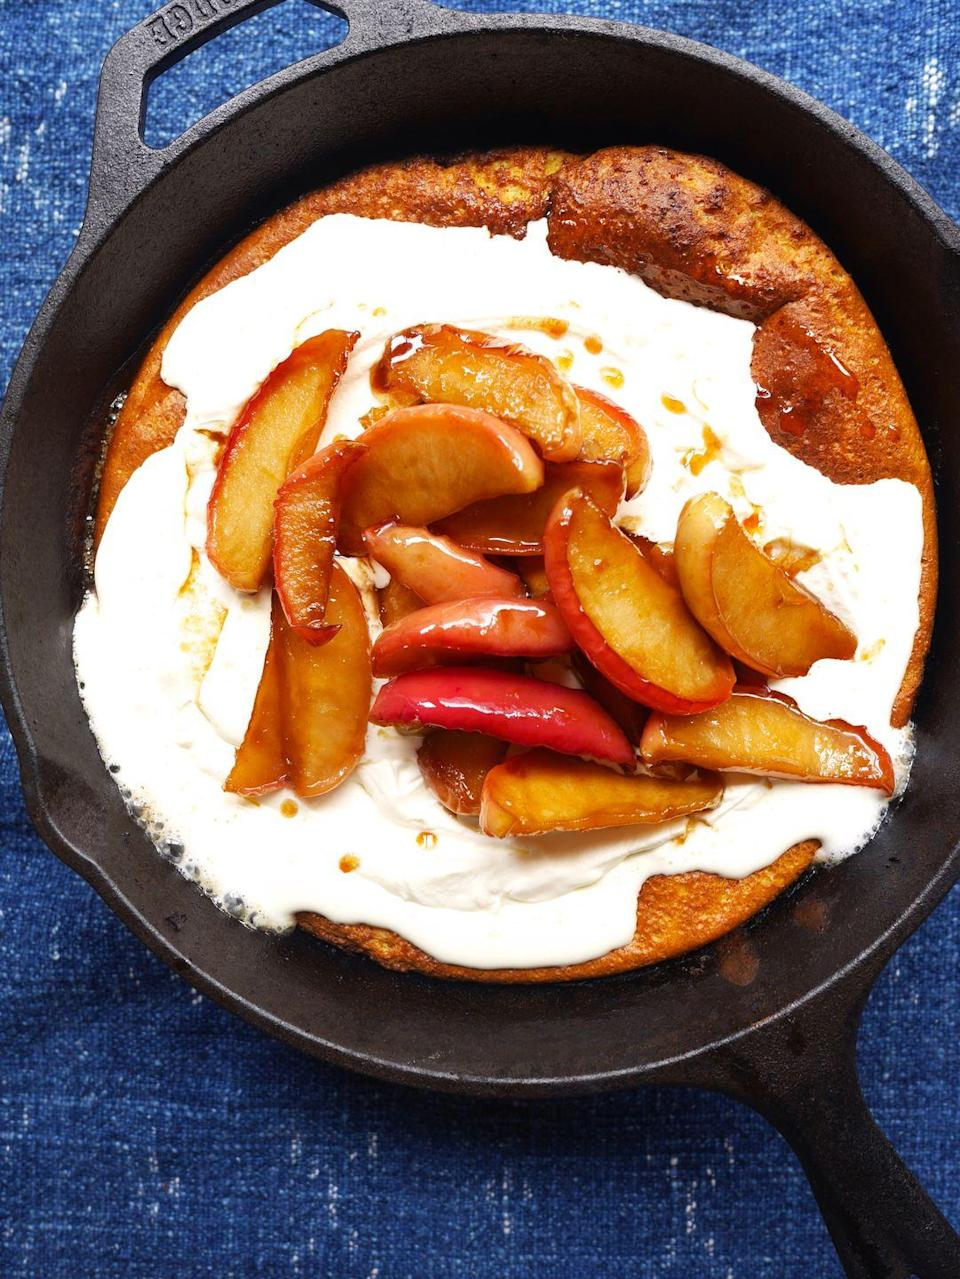 """<p>This autumnal breakfast puts plain old pancakes to shame.</p><p>Get the recipe from <a href=""""https://www.delish.com/cooking/recipe-ideas/recipes/a48963/pumpkin-dutch-baby-with-caramelized-apples-recipe/"""" rel=""""nofollow noopener"""" target=""""_blank"""" data-ylk=""""slk:Delish"""" class=""""link rapid-noclick-resp"""">Delish</a>. </p>"""